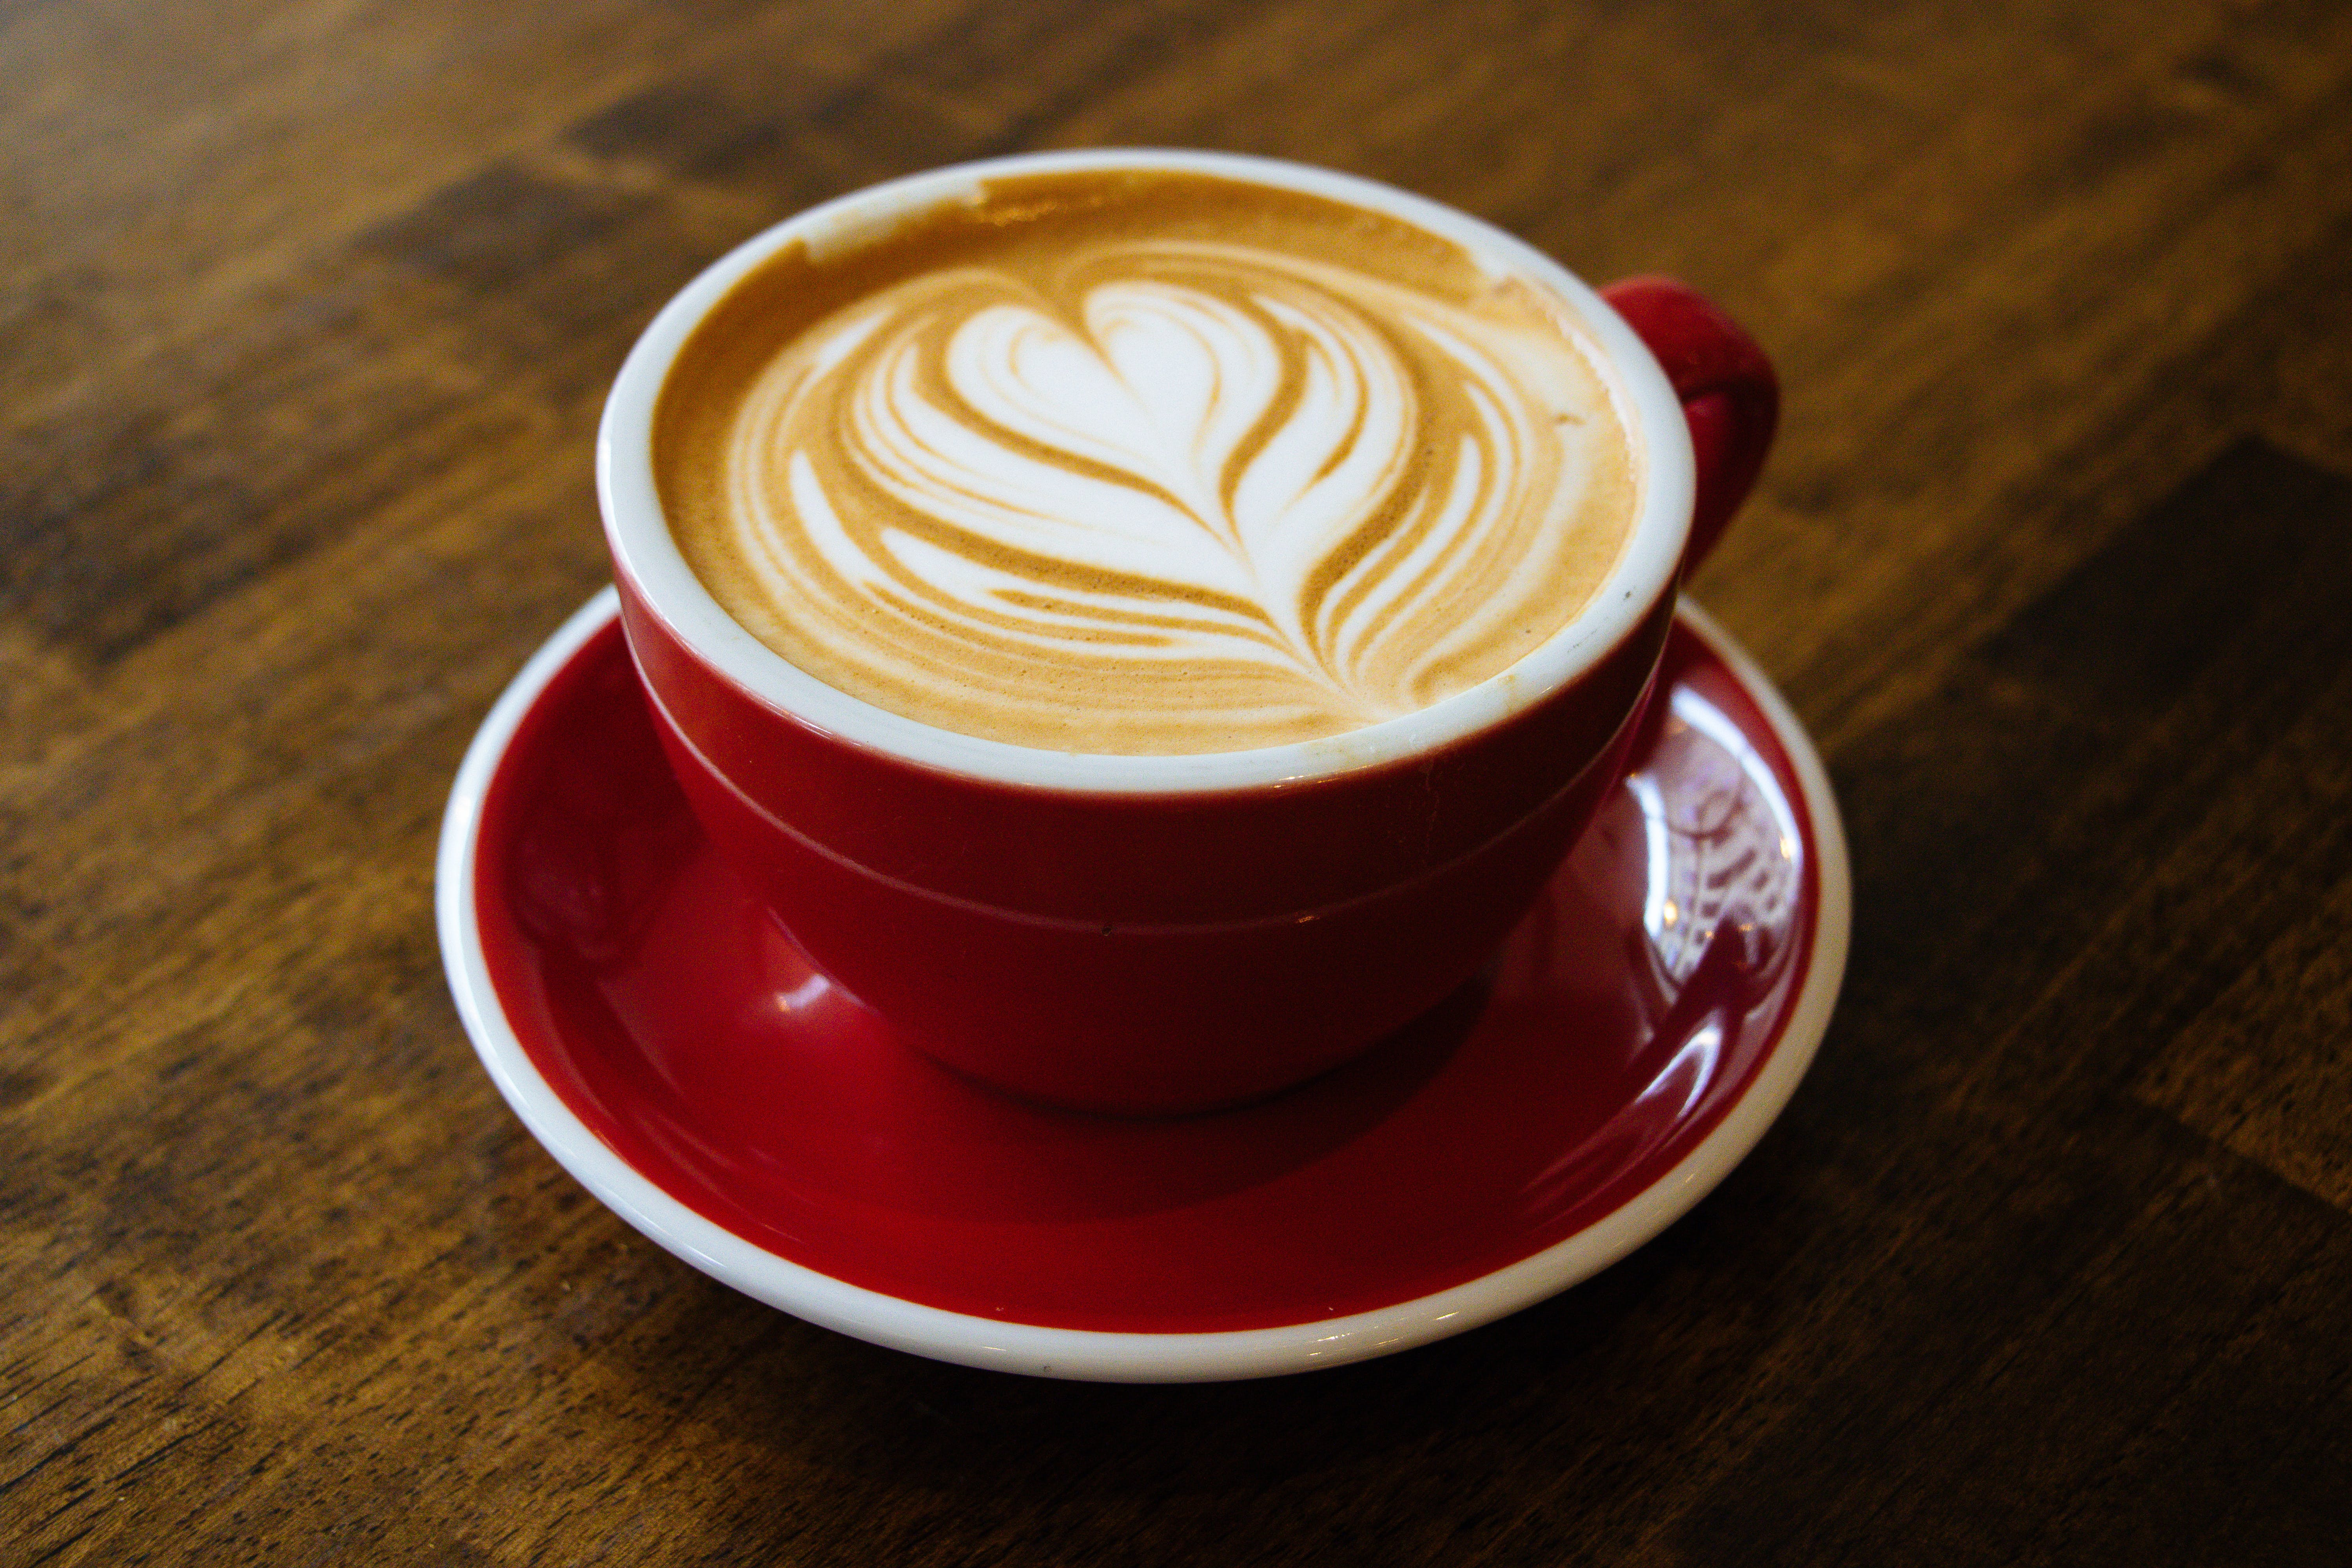 Cappuccino-filled Cup on Red Saucer